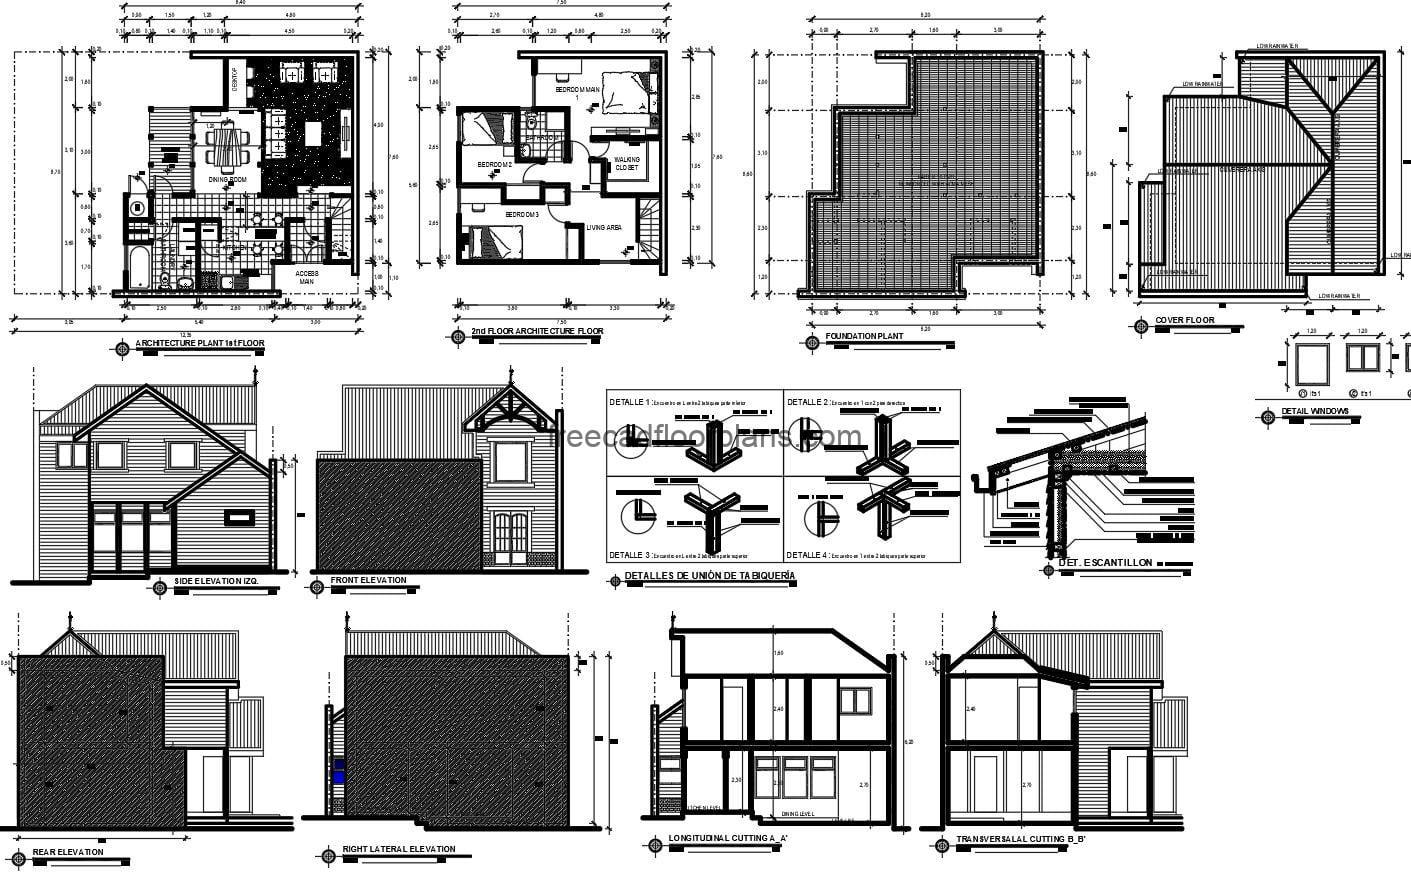 Set of plans in autocad of simple residence of country style, architectural plant, dimensioned, details of foundation, elevations and sections, plans for free download.